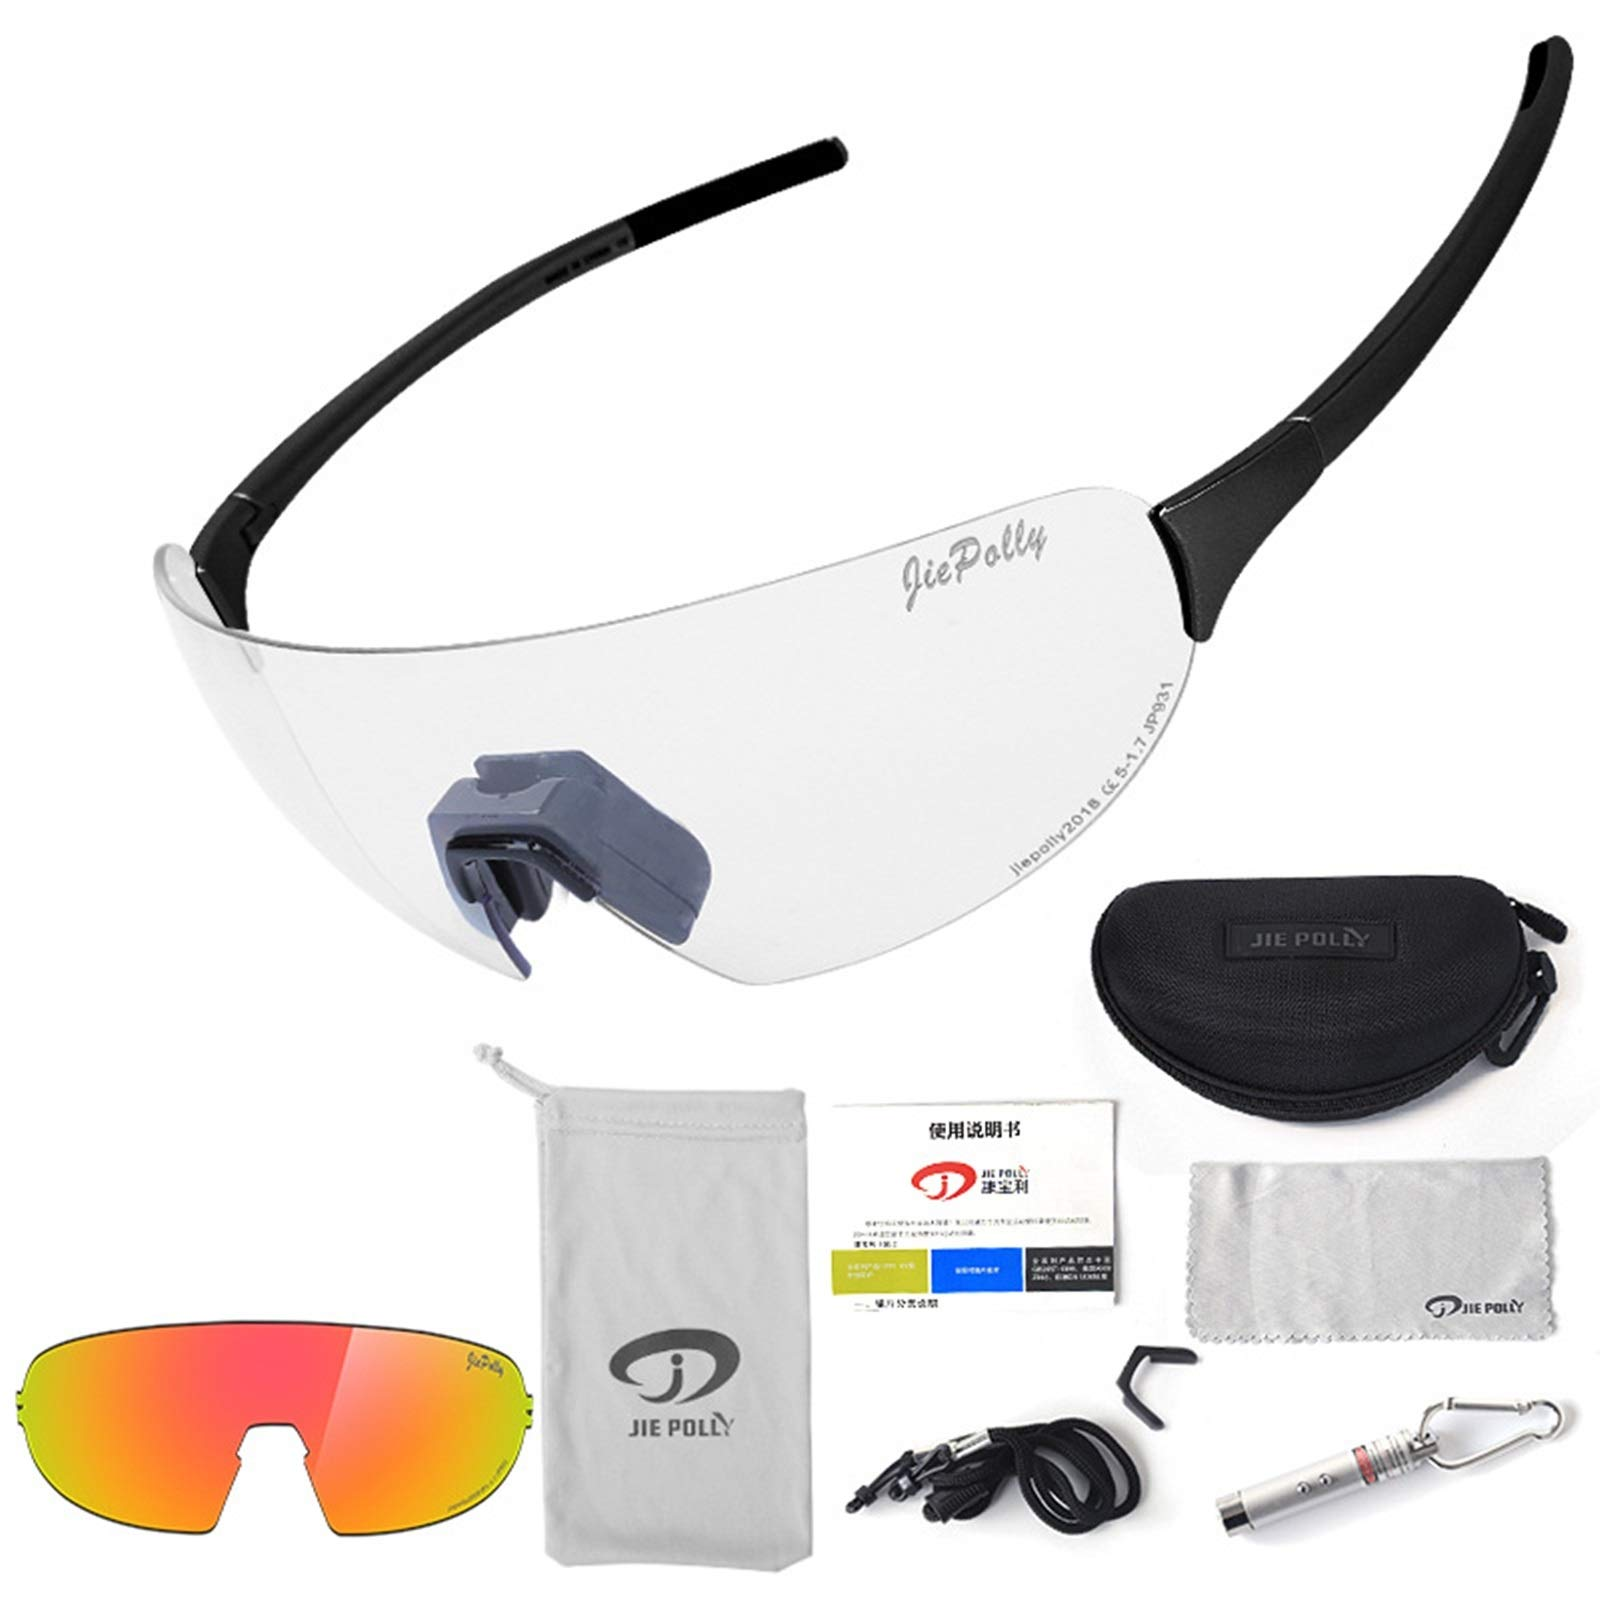 Adisaer Outdoor Sports Goggles Outdoor Sports Riding Color-Changing Glasses Men and Women Running Fishing Bicycle Windproof Polarized Glasses Black Upgrade 2 for Adults